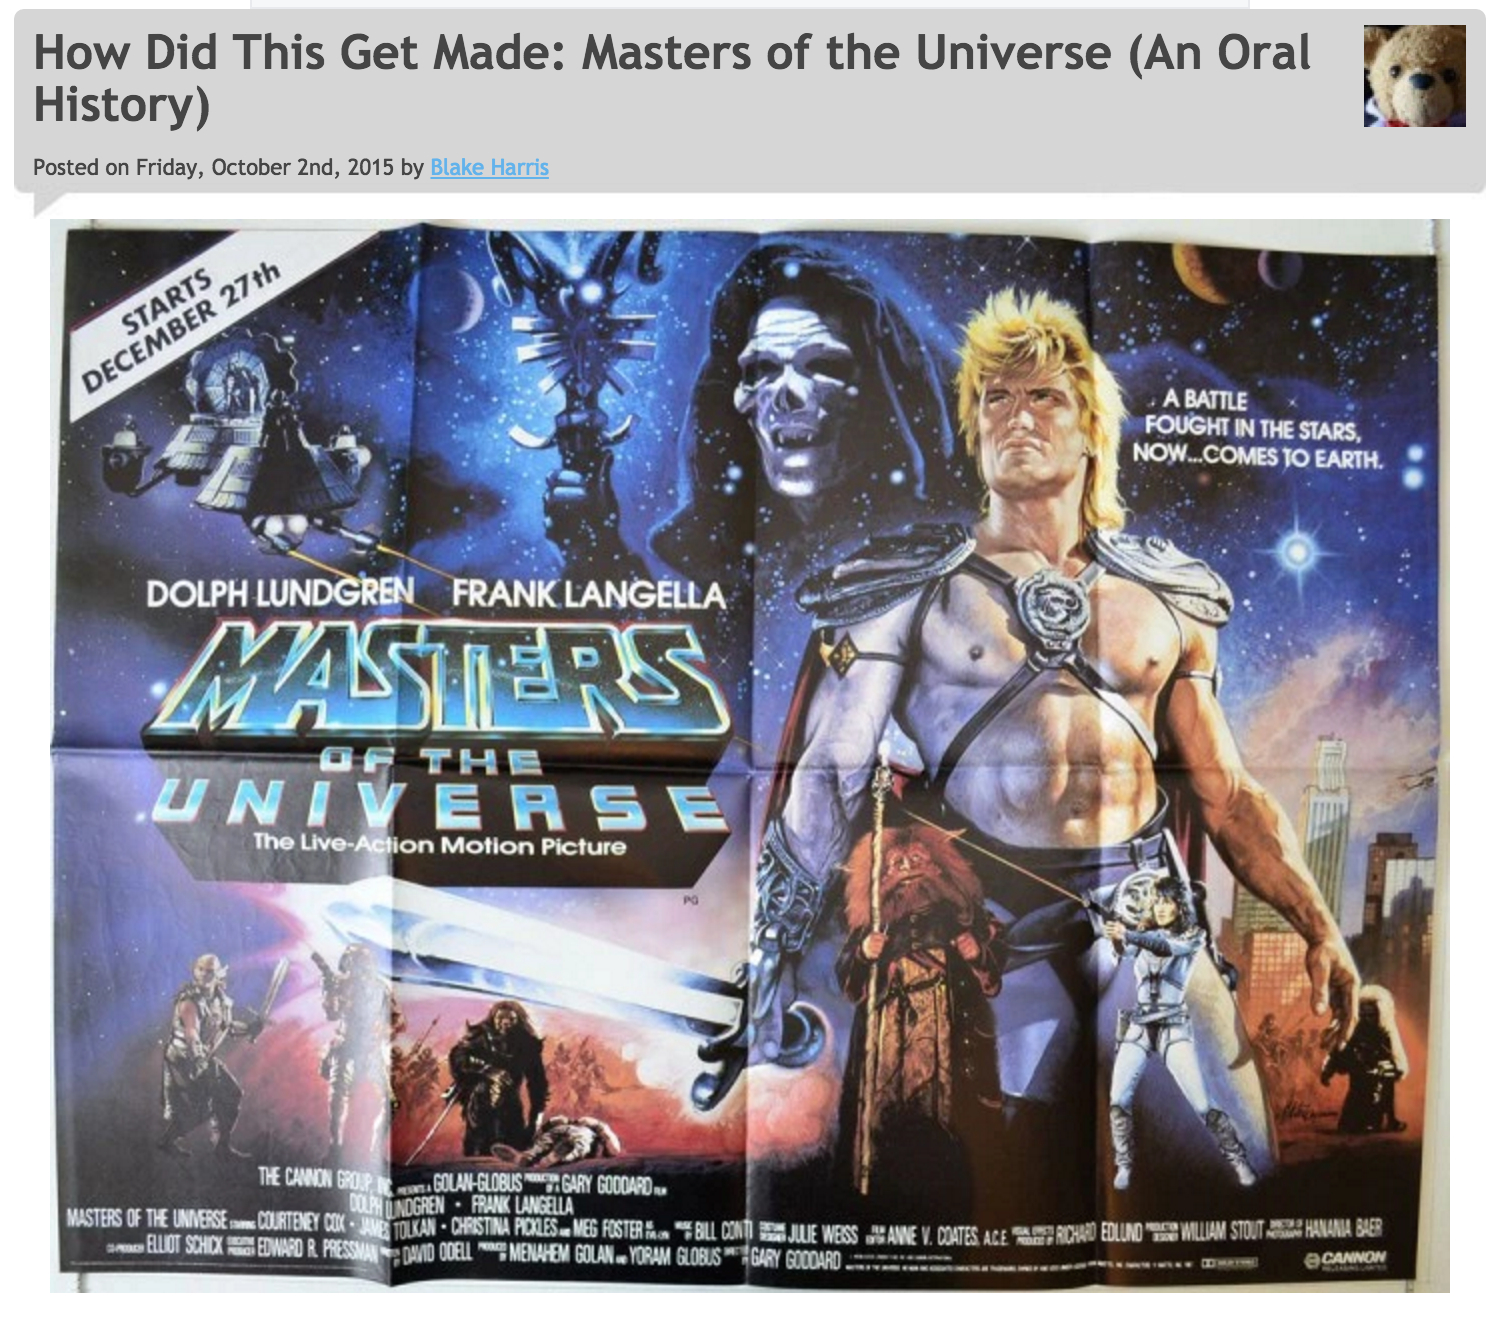 10/2/15: MASTERS OF THE UNIVERSE